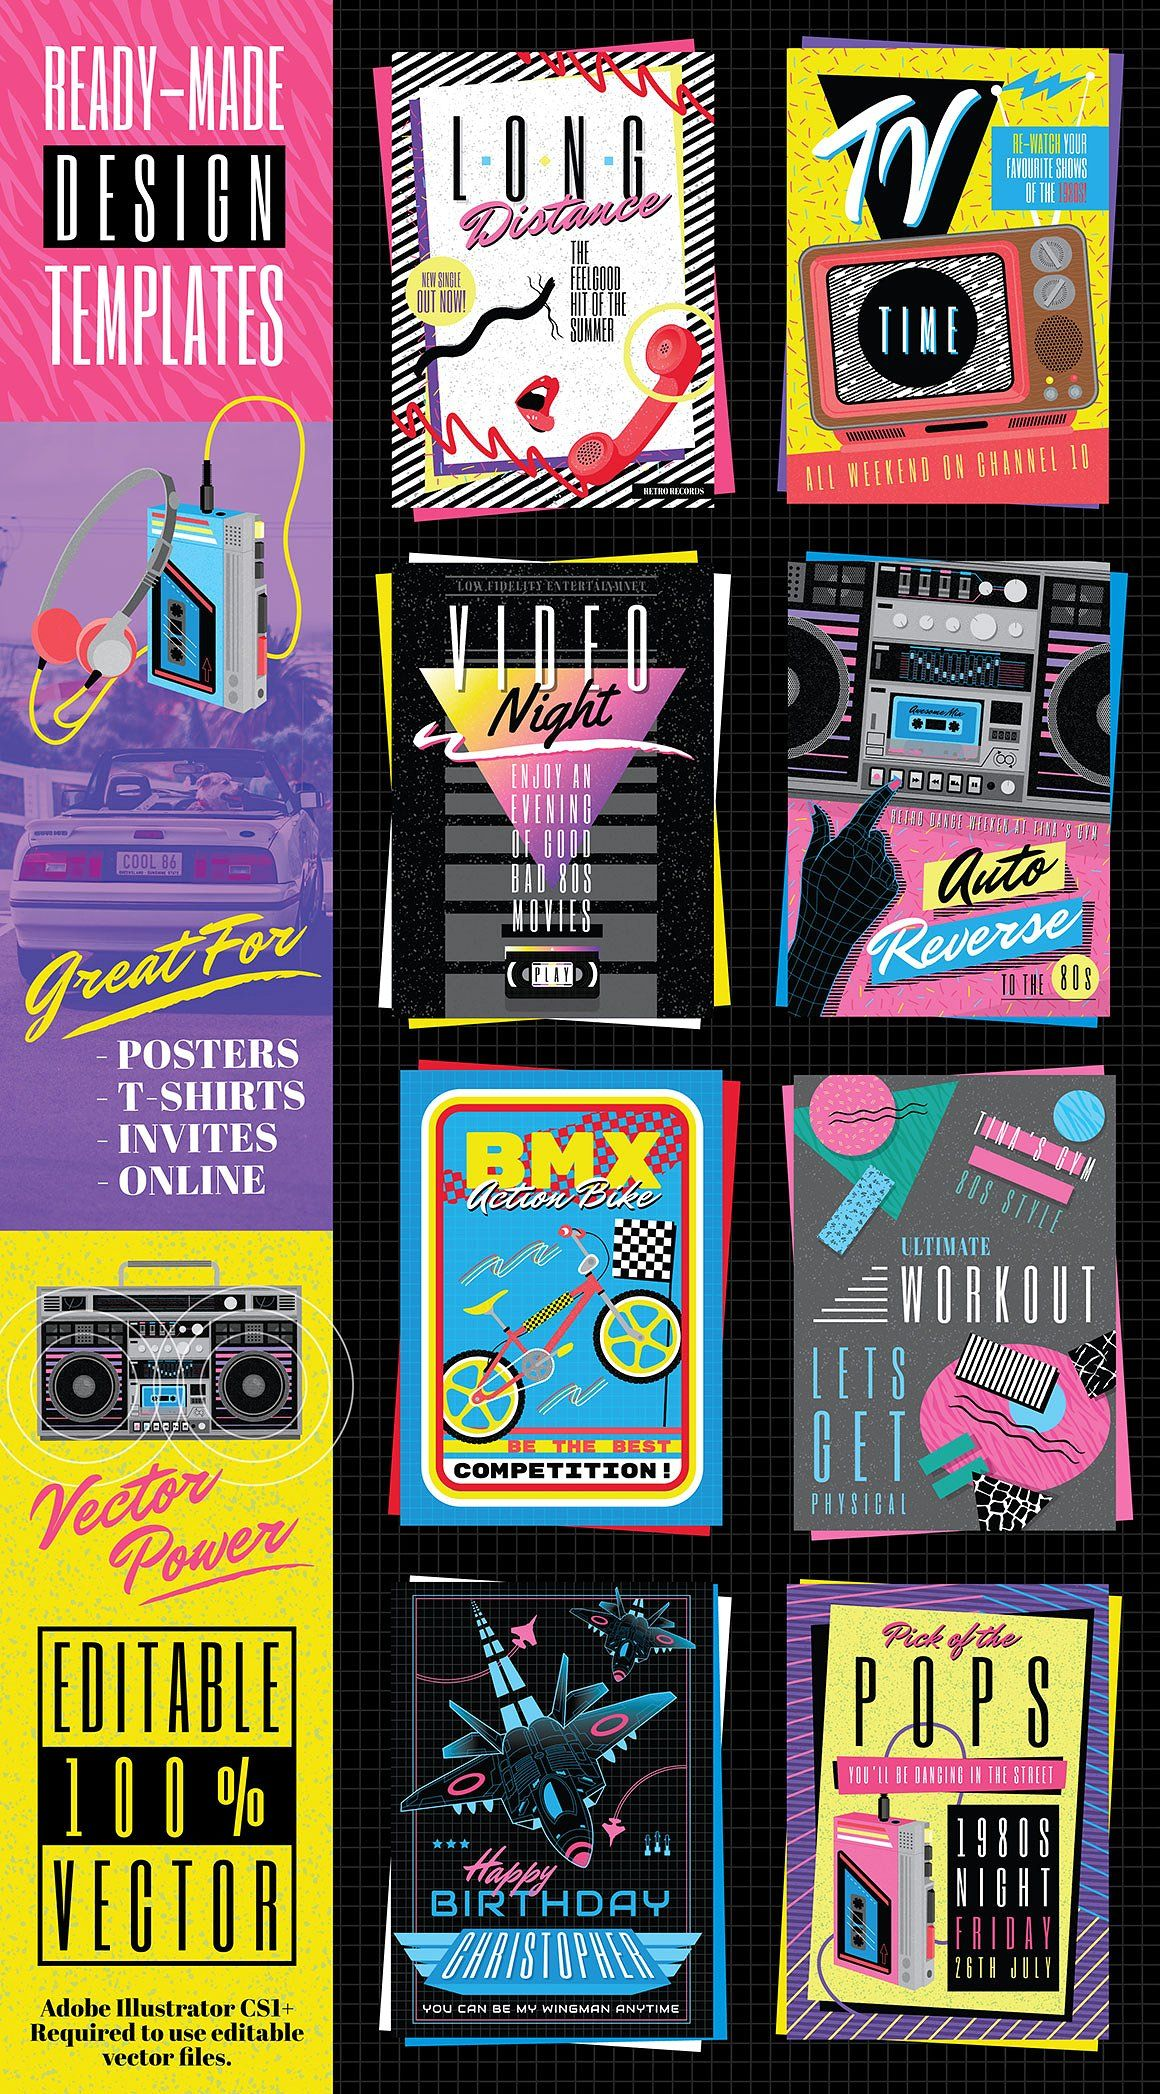 Retro Cool 1980s Poster Templates #pack#running#designs# ...